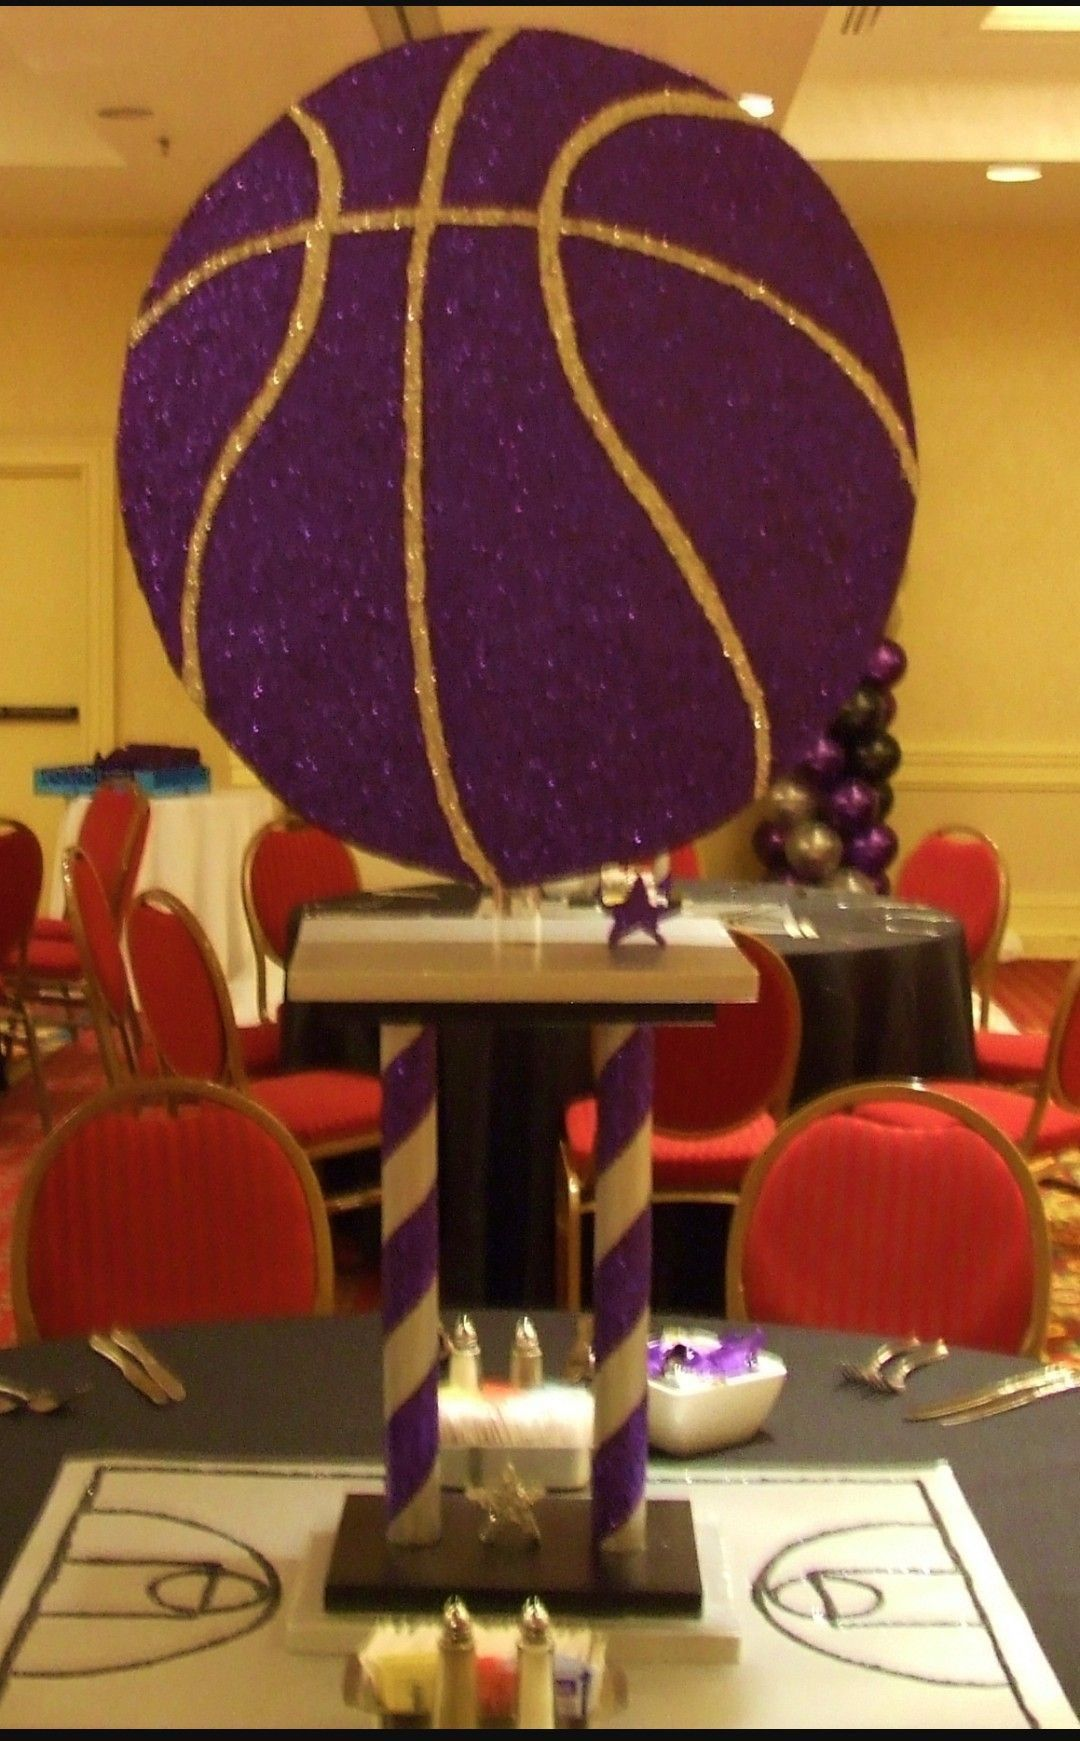 Pin by Steph on Holiday Sports themed party decorations